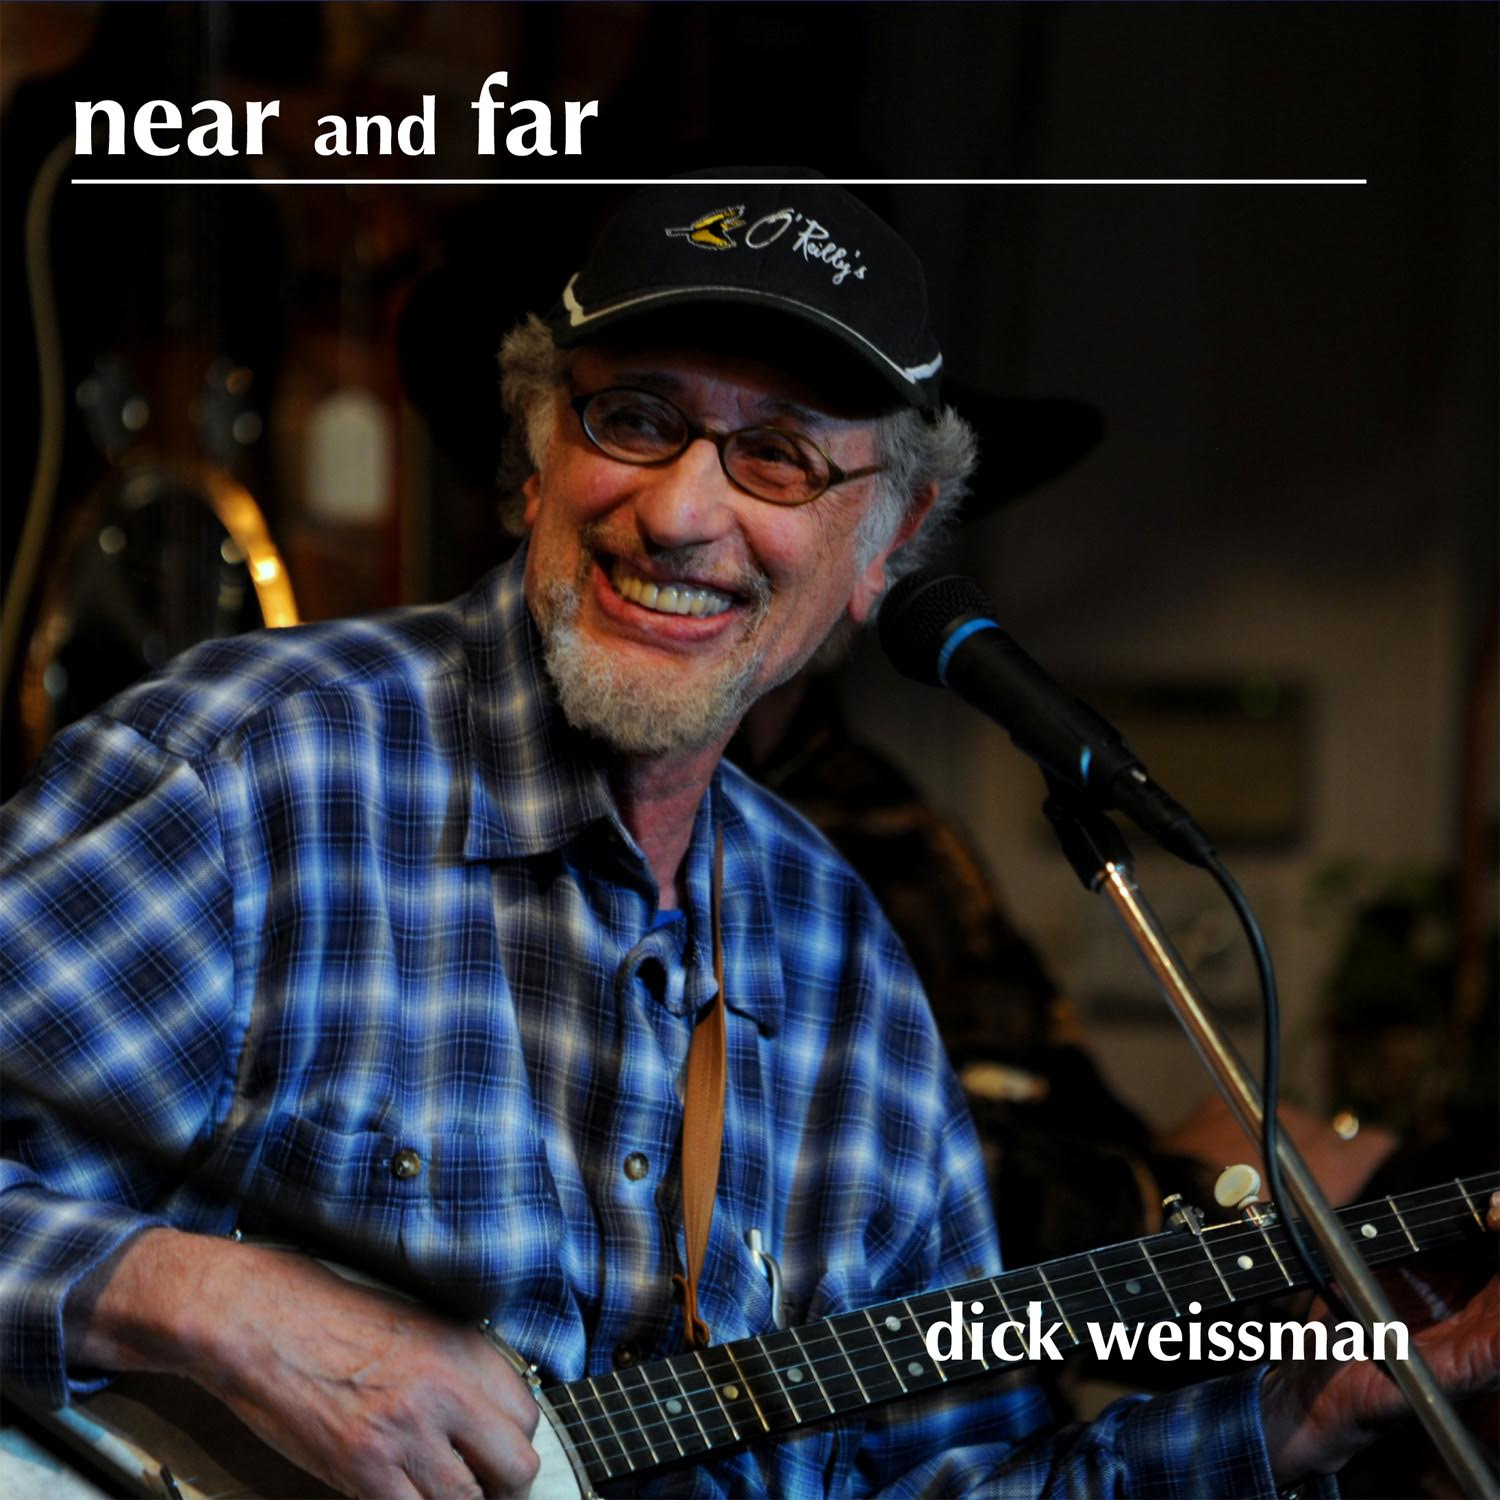 Harry Tuft and Dick Weissman Celebrate 50 Years of Music Making With Intimate Concert